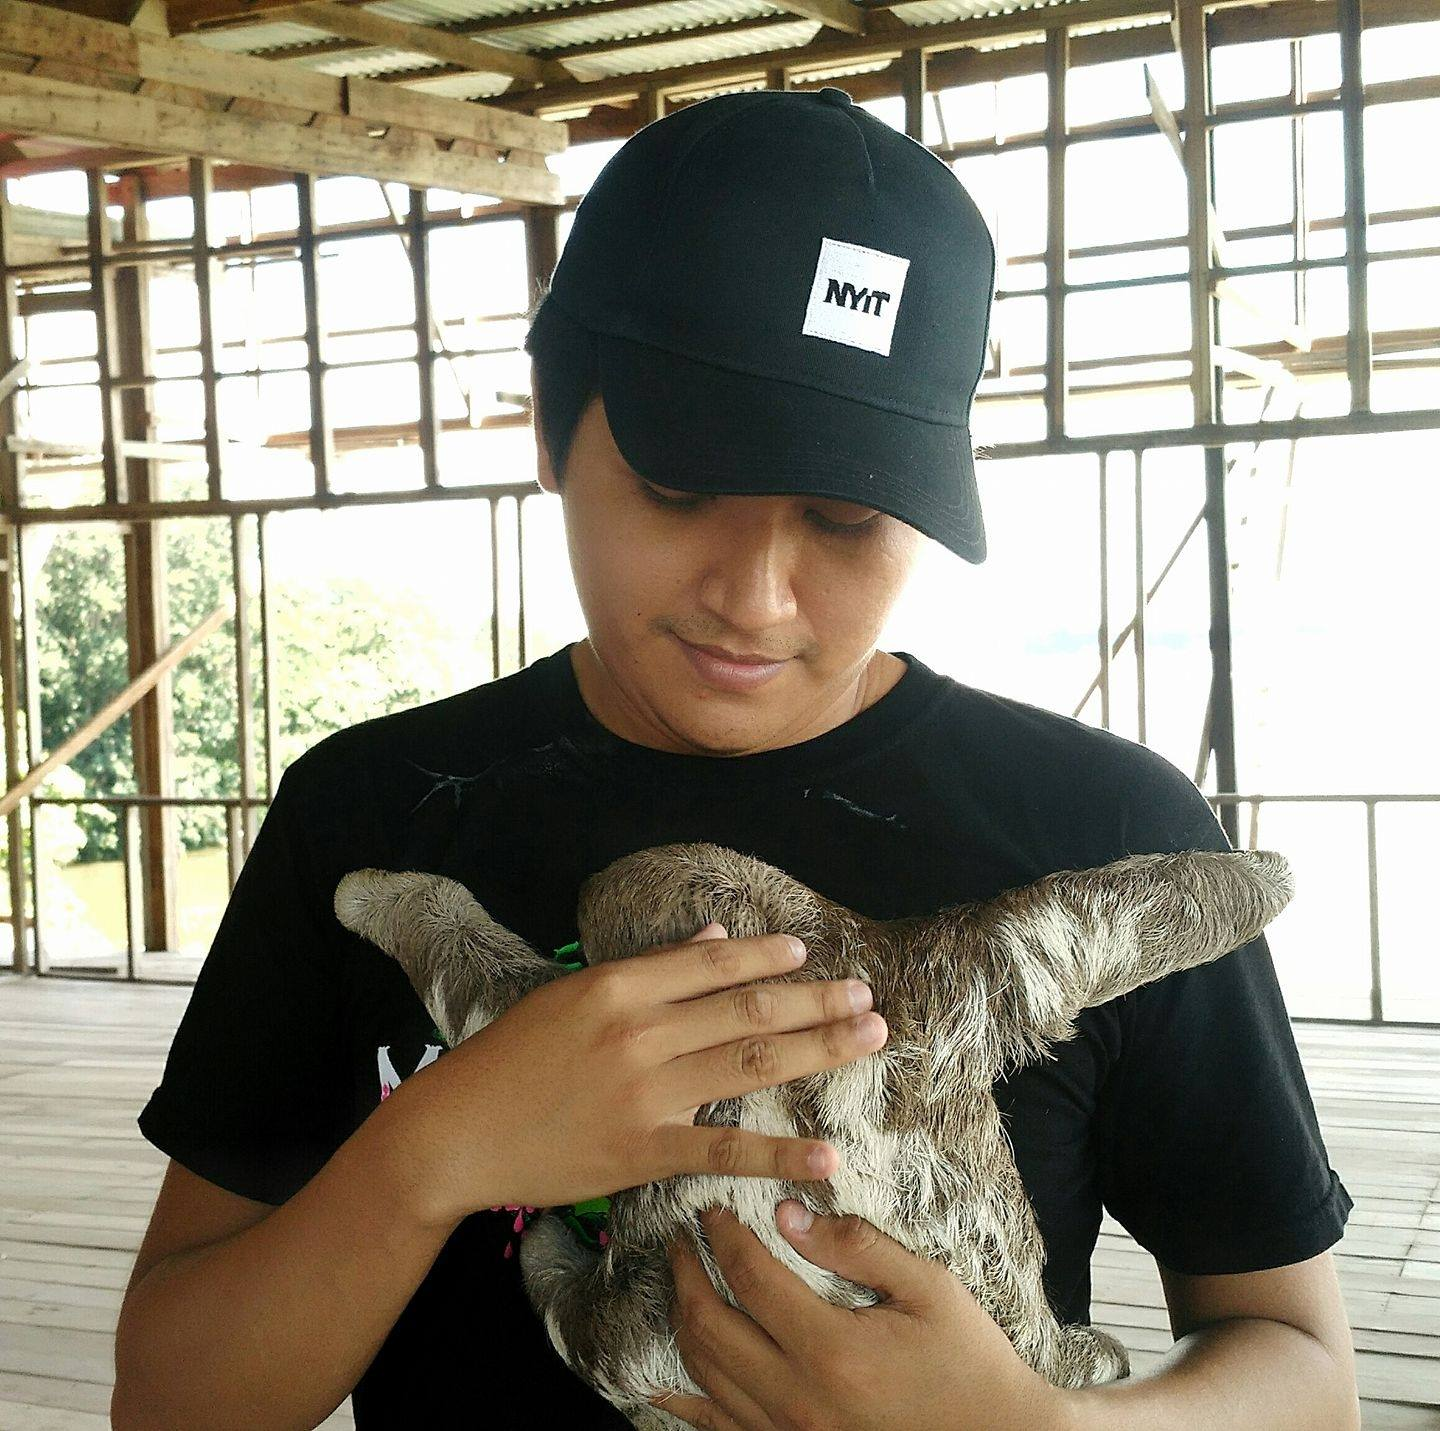 Patrick with baby sloth